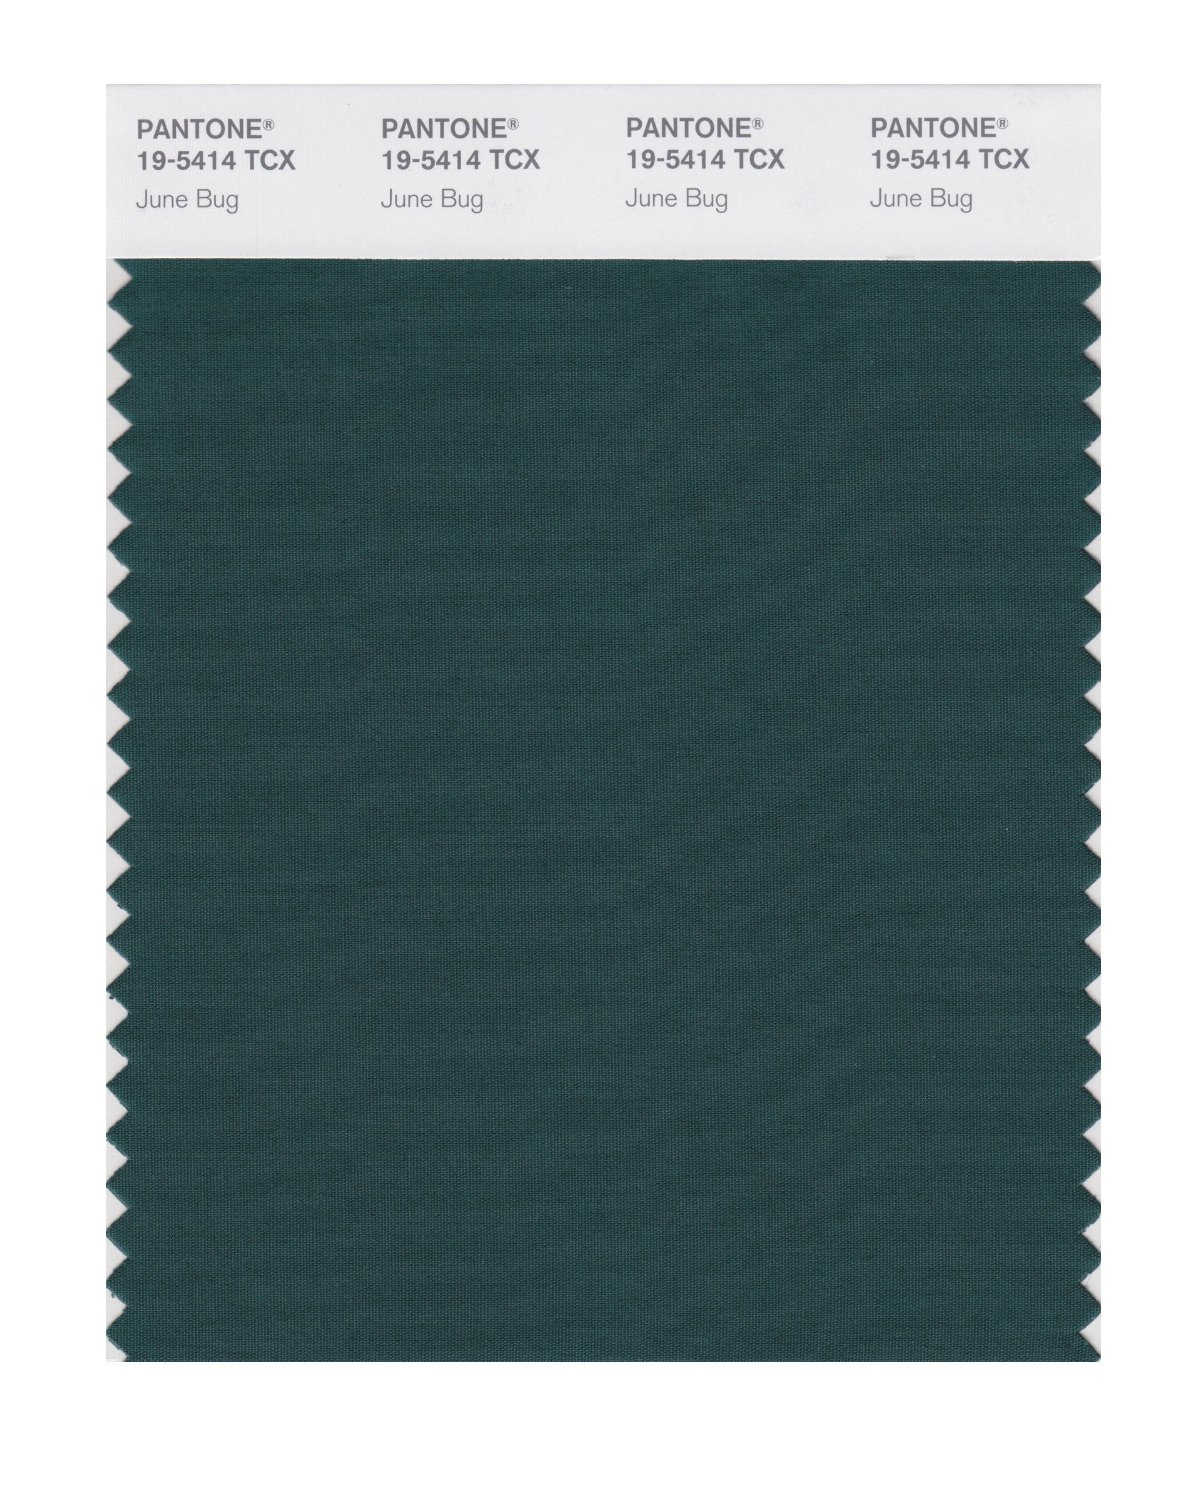 Pantone Smart Swatch 19-5414 June Bug